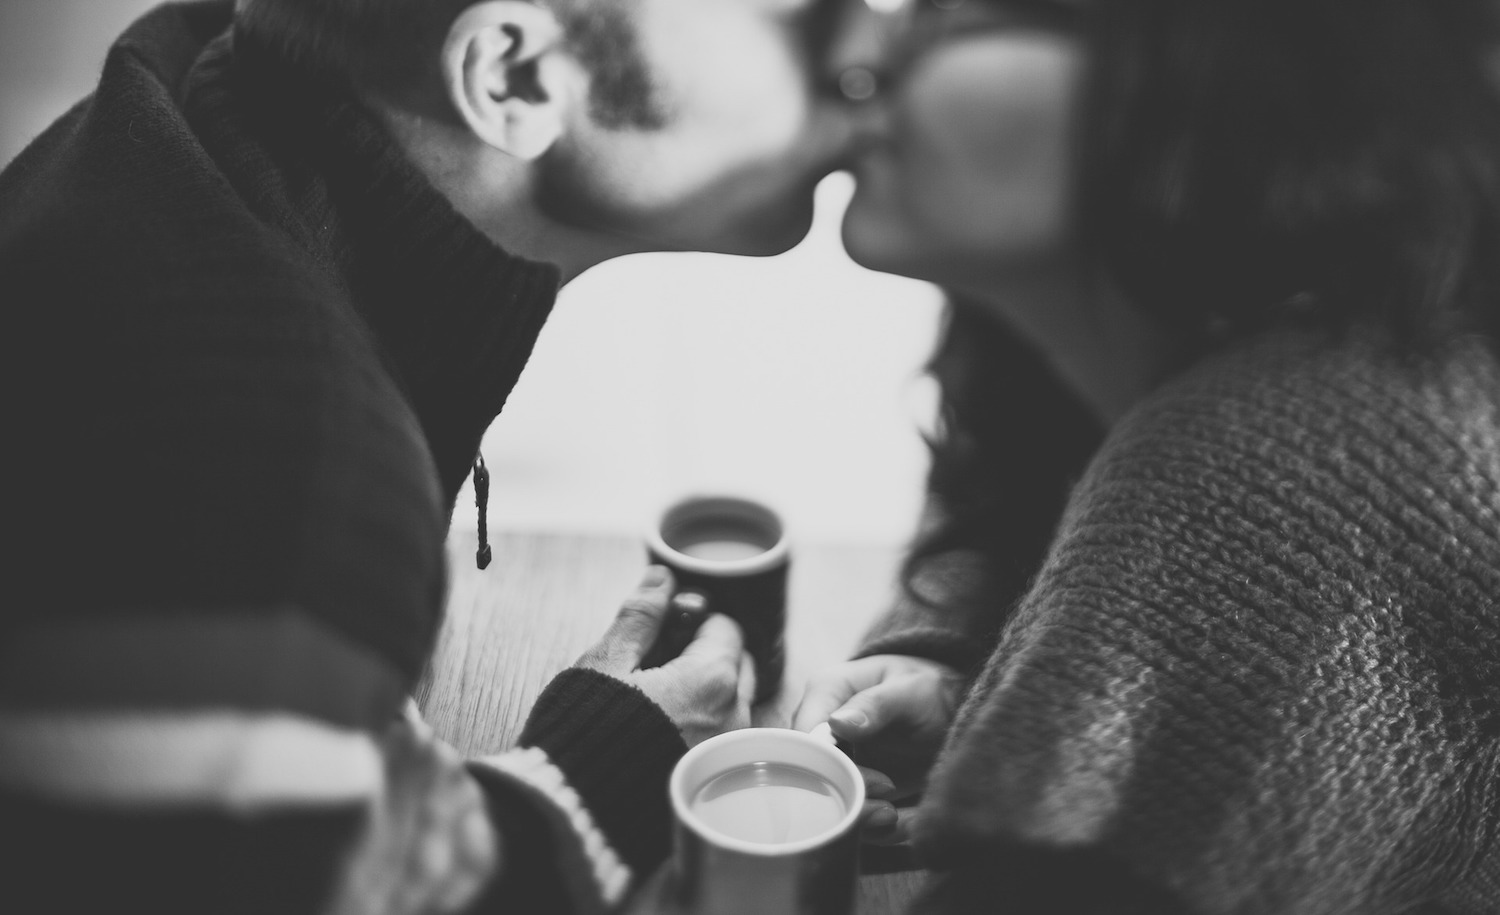 7 Secrets About Being in a Relationship With an INTJ Personality